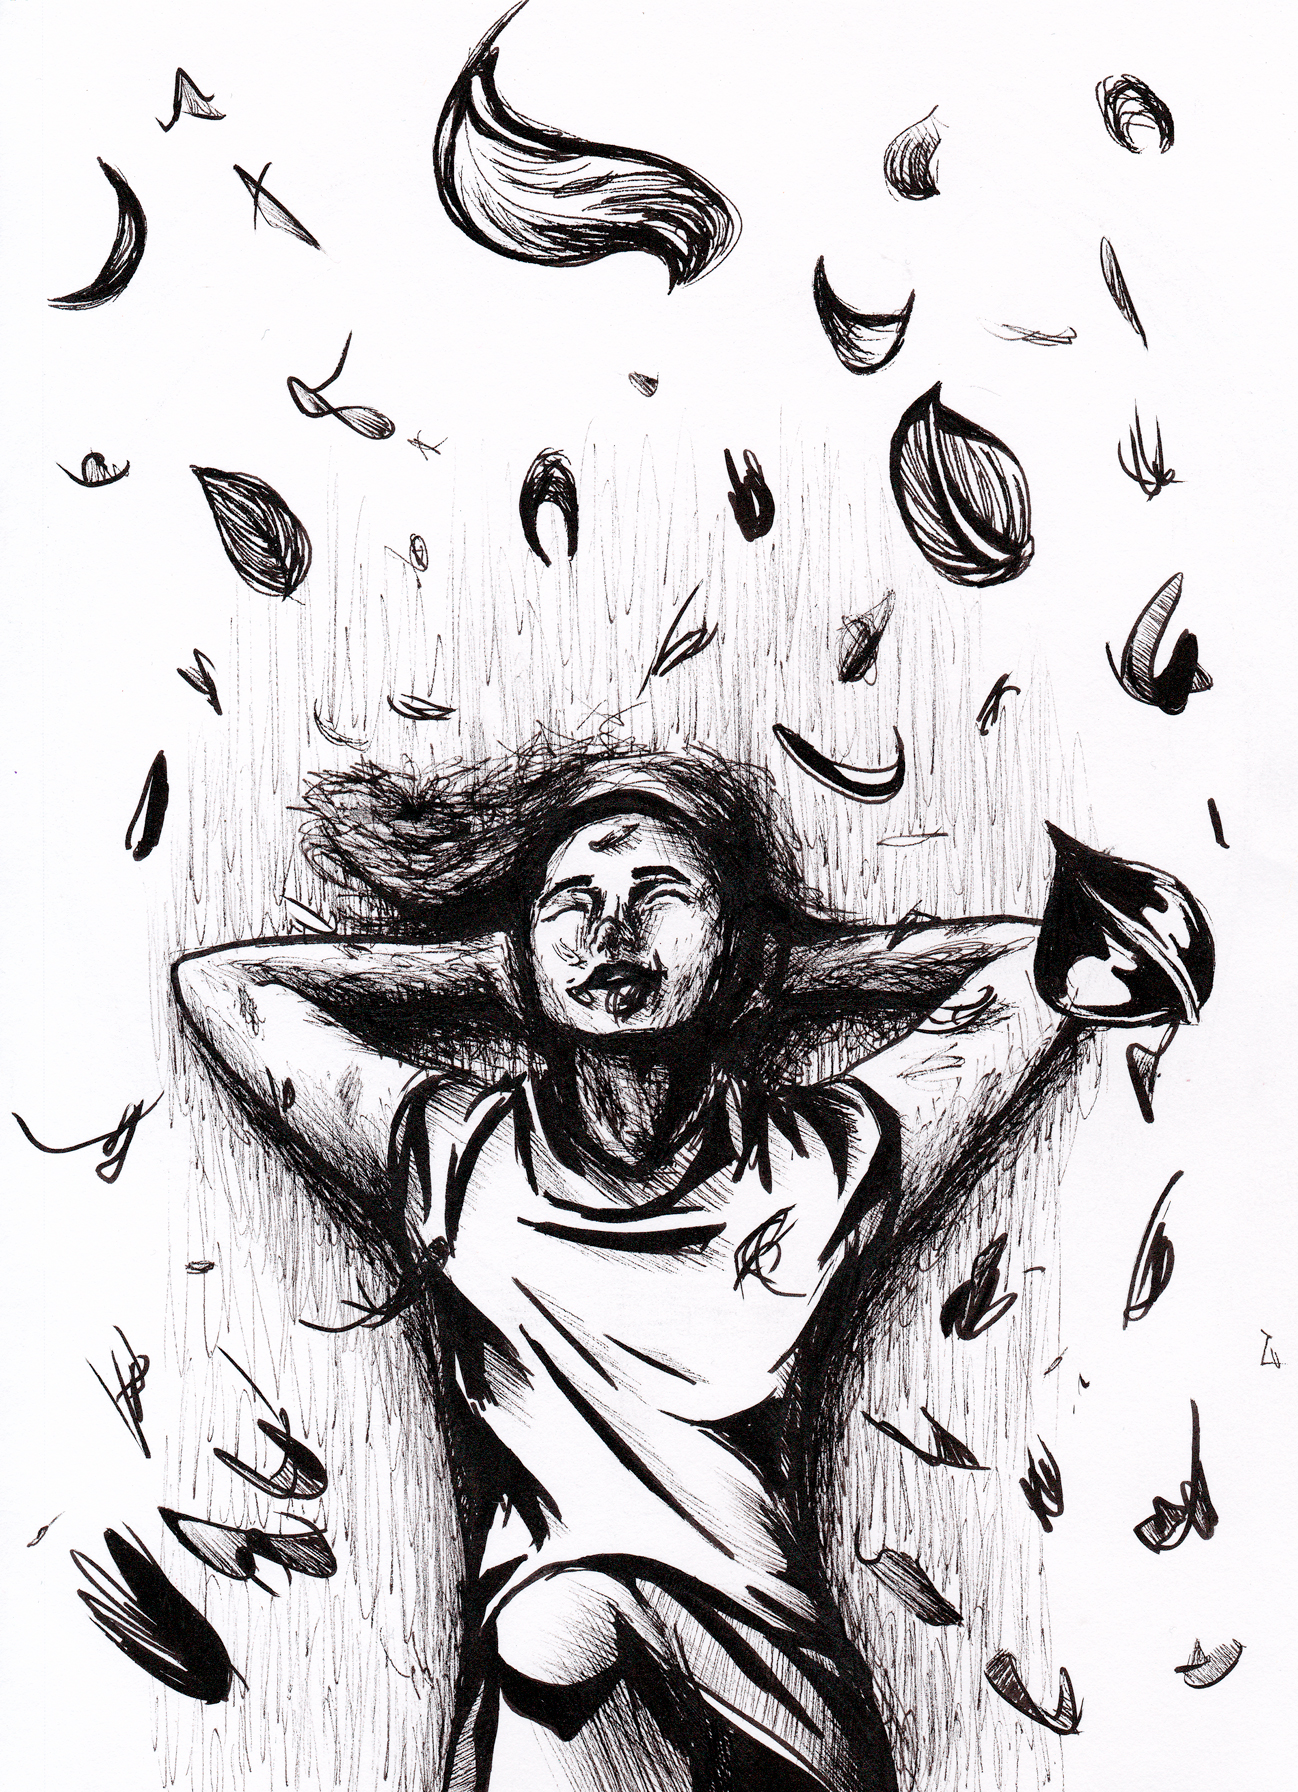 A figure lounges under spiralling leaves. Inked black on white.